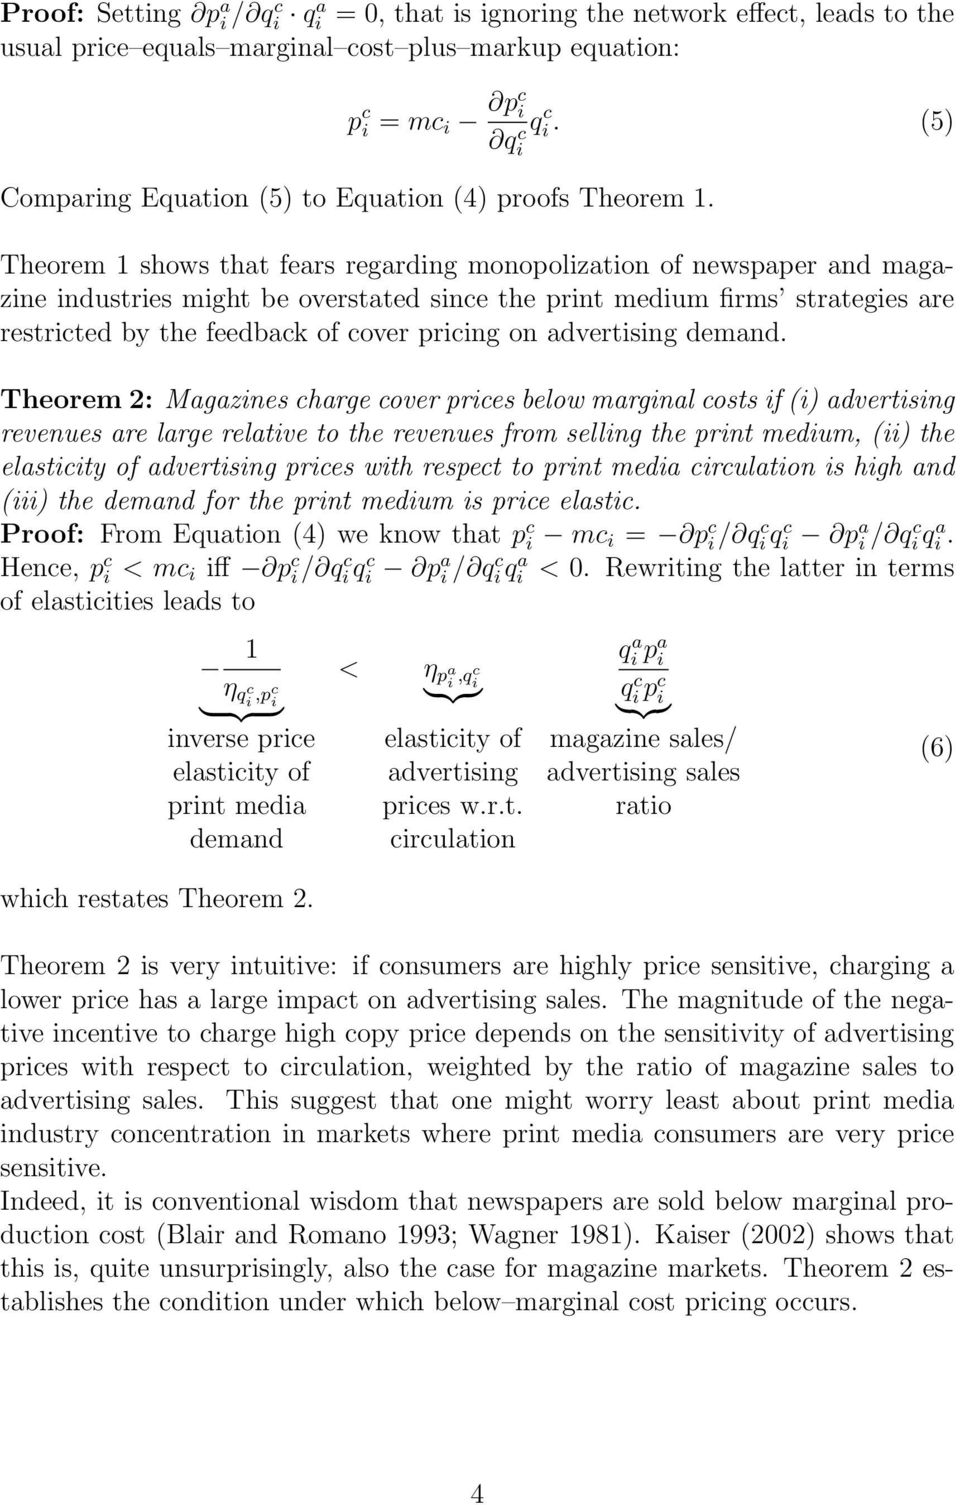 Theorem 1 shows that fears regarding monopolization of newspaper and magazine industries might be overstated since the print medium firms strategies are restricted by the feedback of cover pricing on